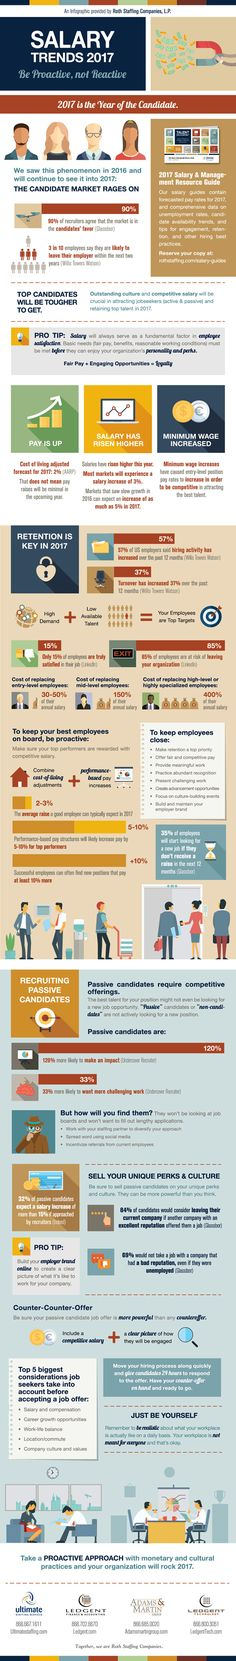 The Latest Salary Trends 2017 - Infographic